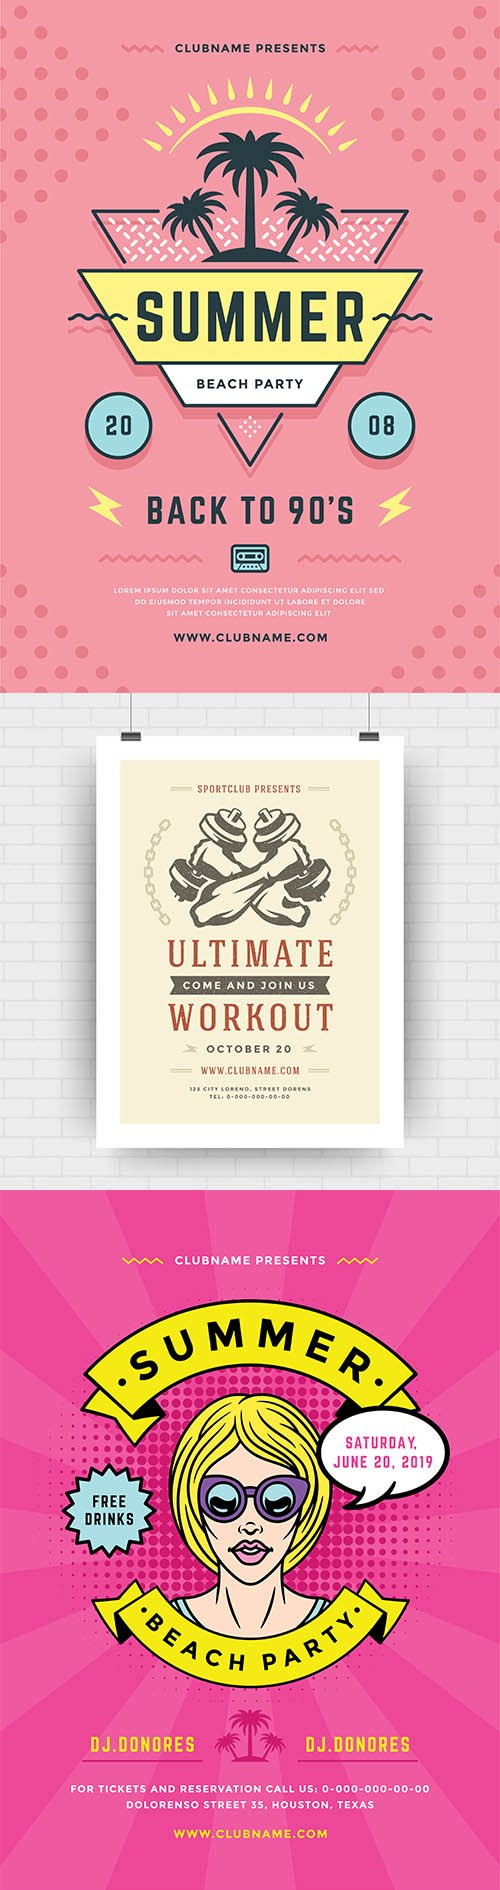 Summer Beach Party Flyer and Fitness Center Poster Template